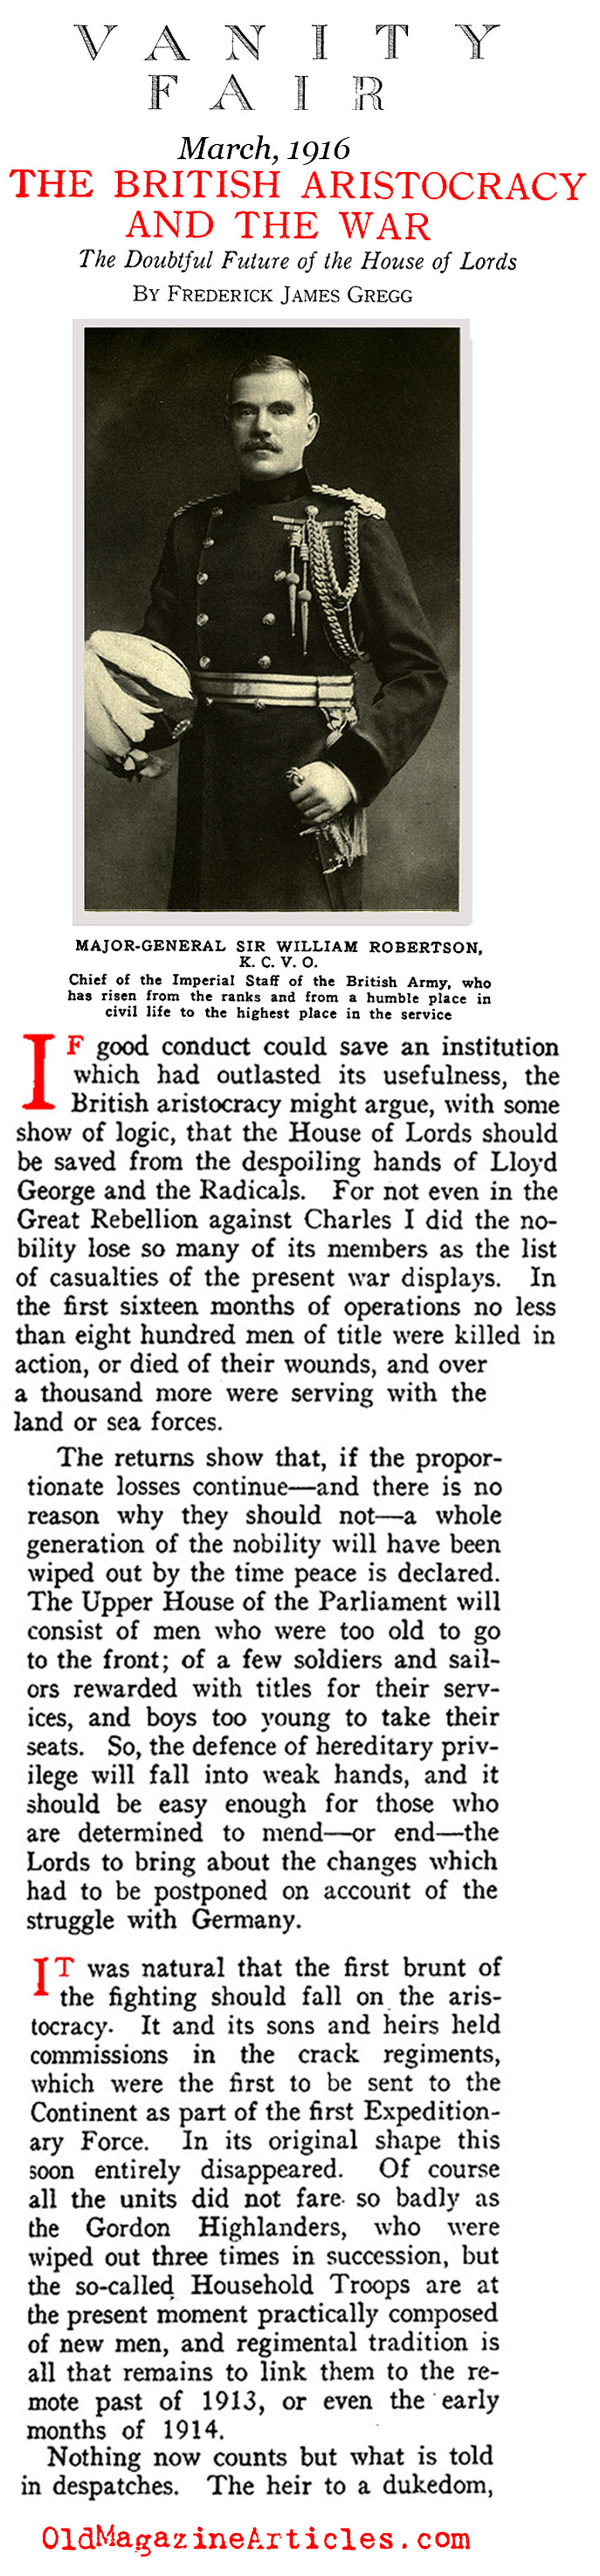 The British Aristocracy and the Great  War (Vanity Fair, 1916)